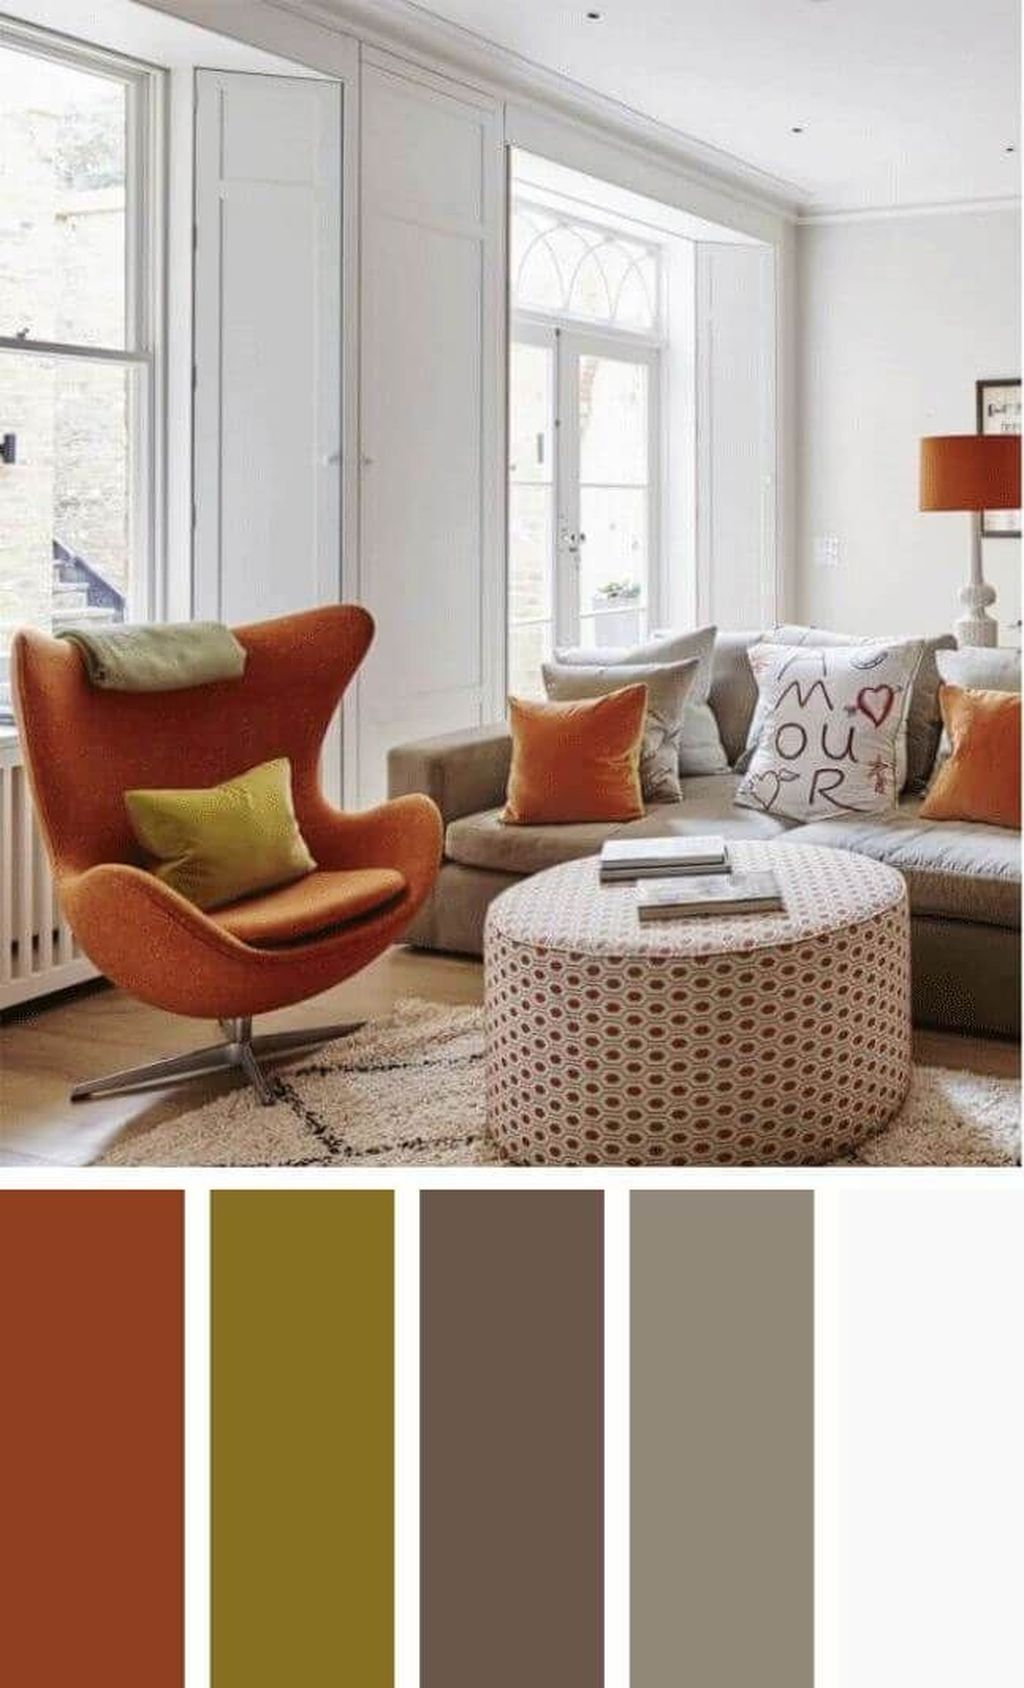 41 Inspiring Living Room Color Schemes Ideas Will Make Space Beautiful images